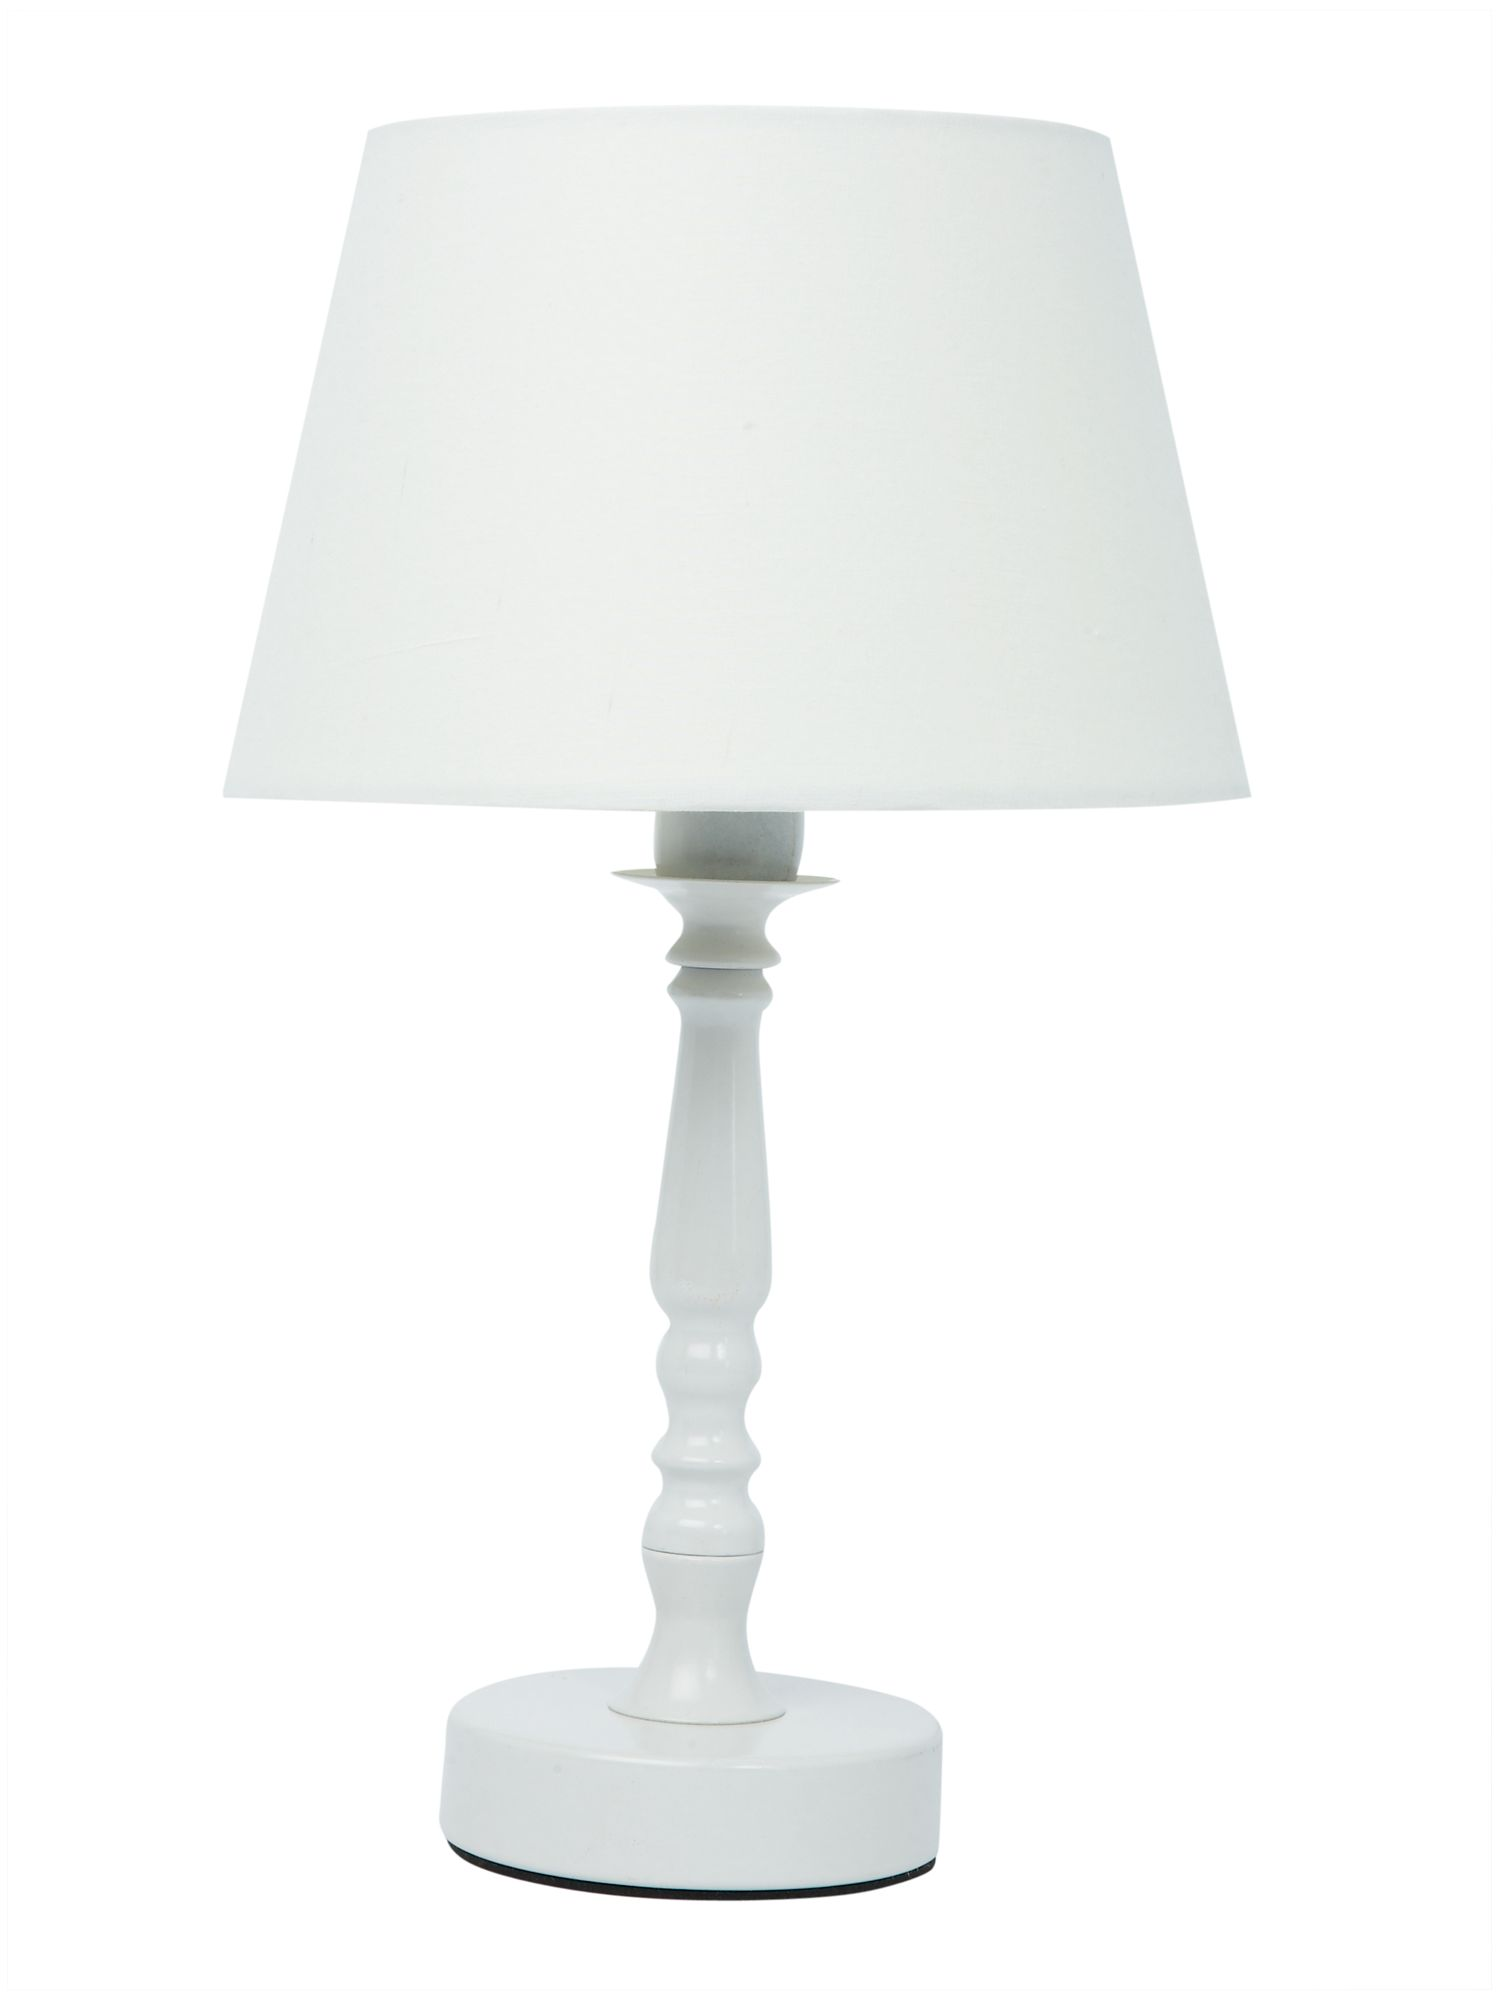 House of Fraser Remo cream table lamp